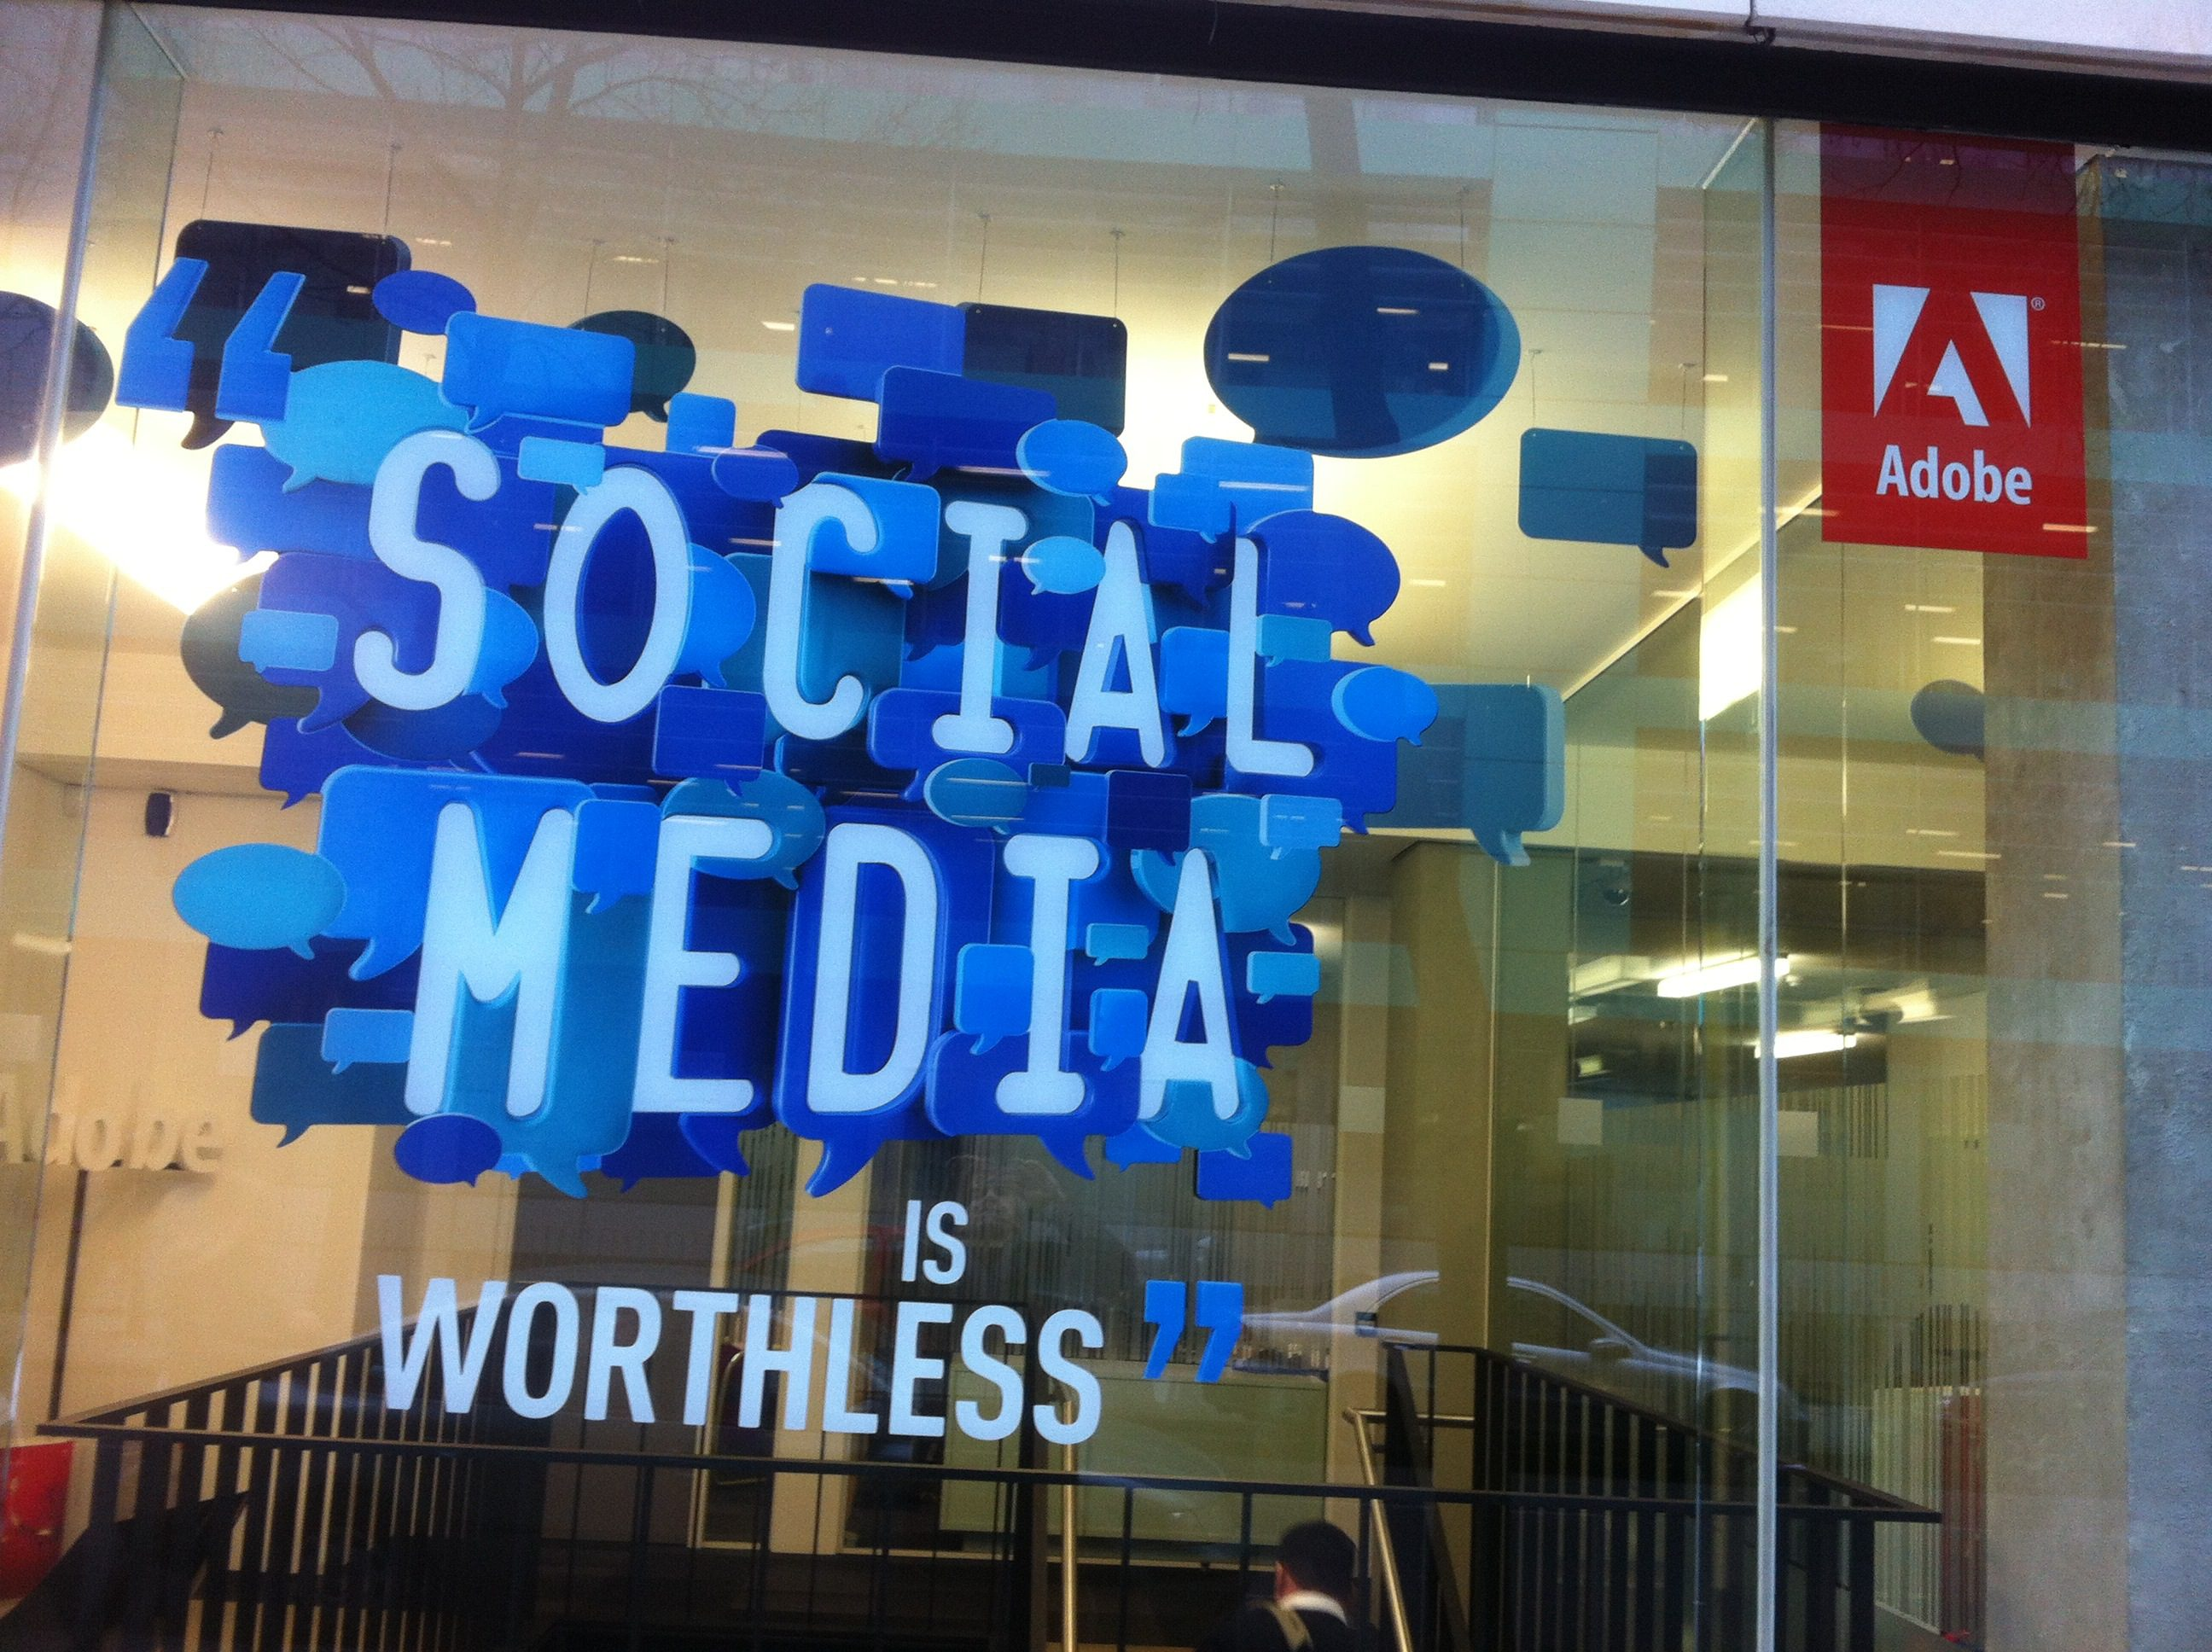 Adobe Social Media is Worthless, The Myndset Digital Marketing and Brand Strategy